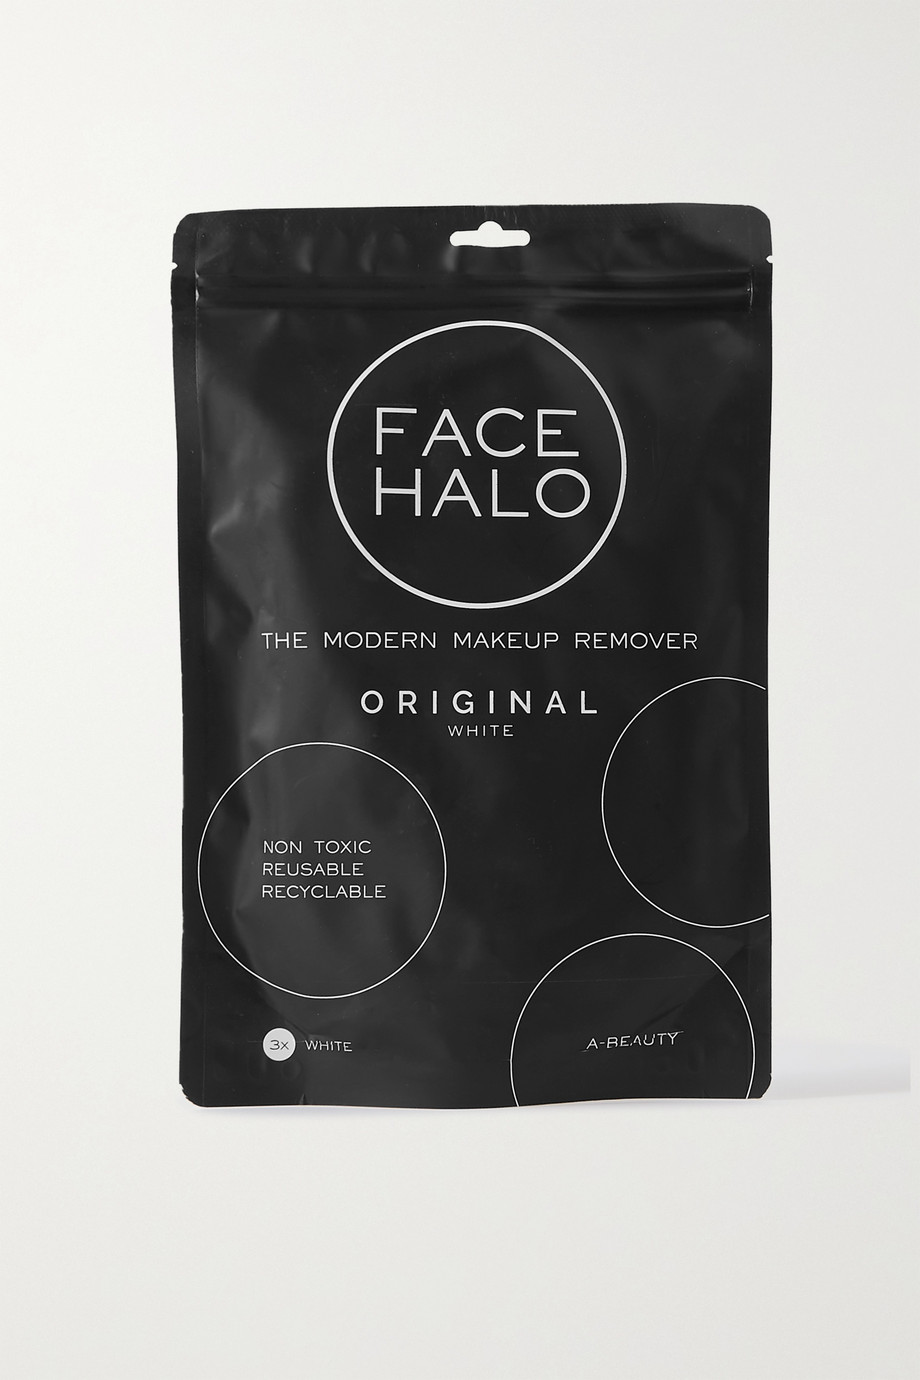 FACE HALO + NET SUSTAIN set of three makeup remover pads